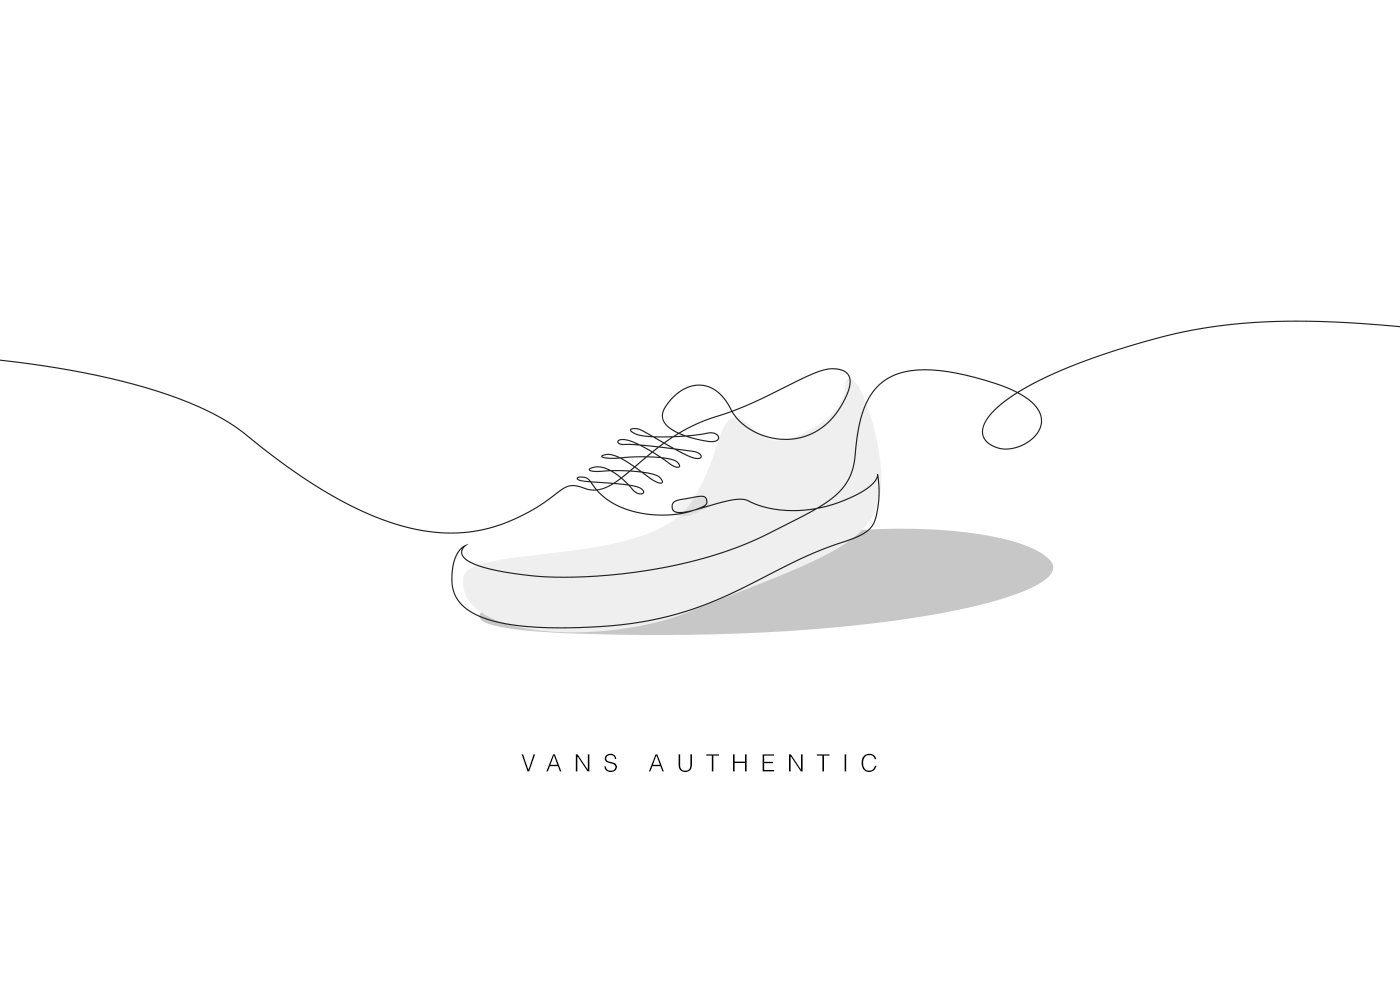 sneakers-authentic-01Vans